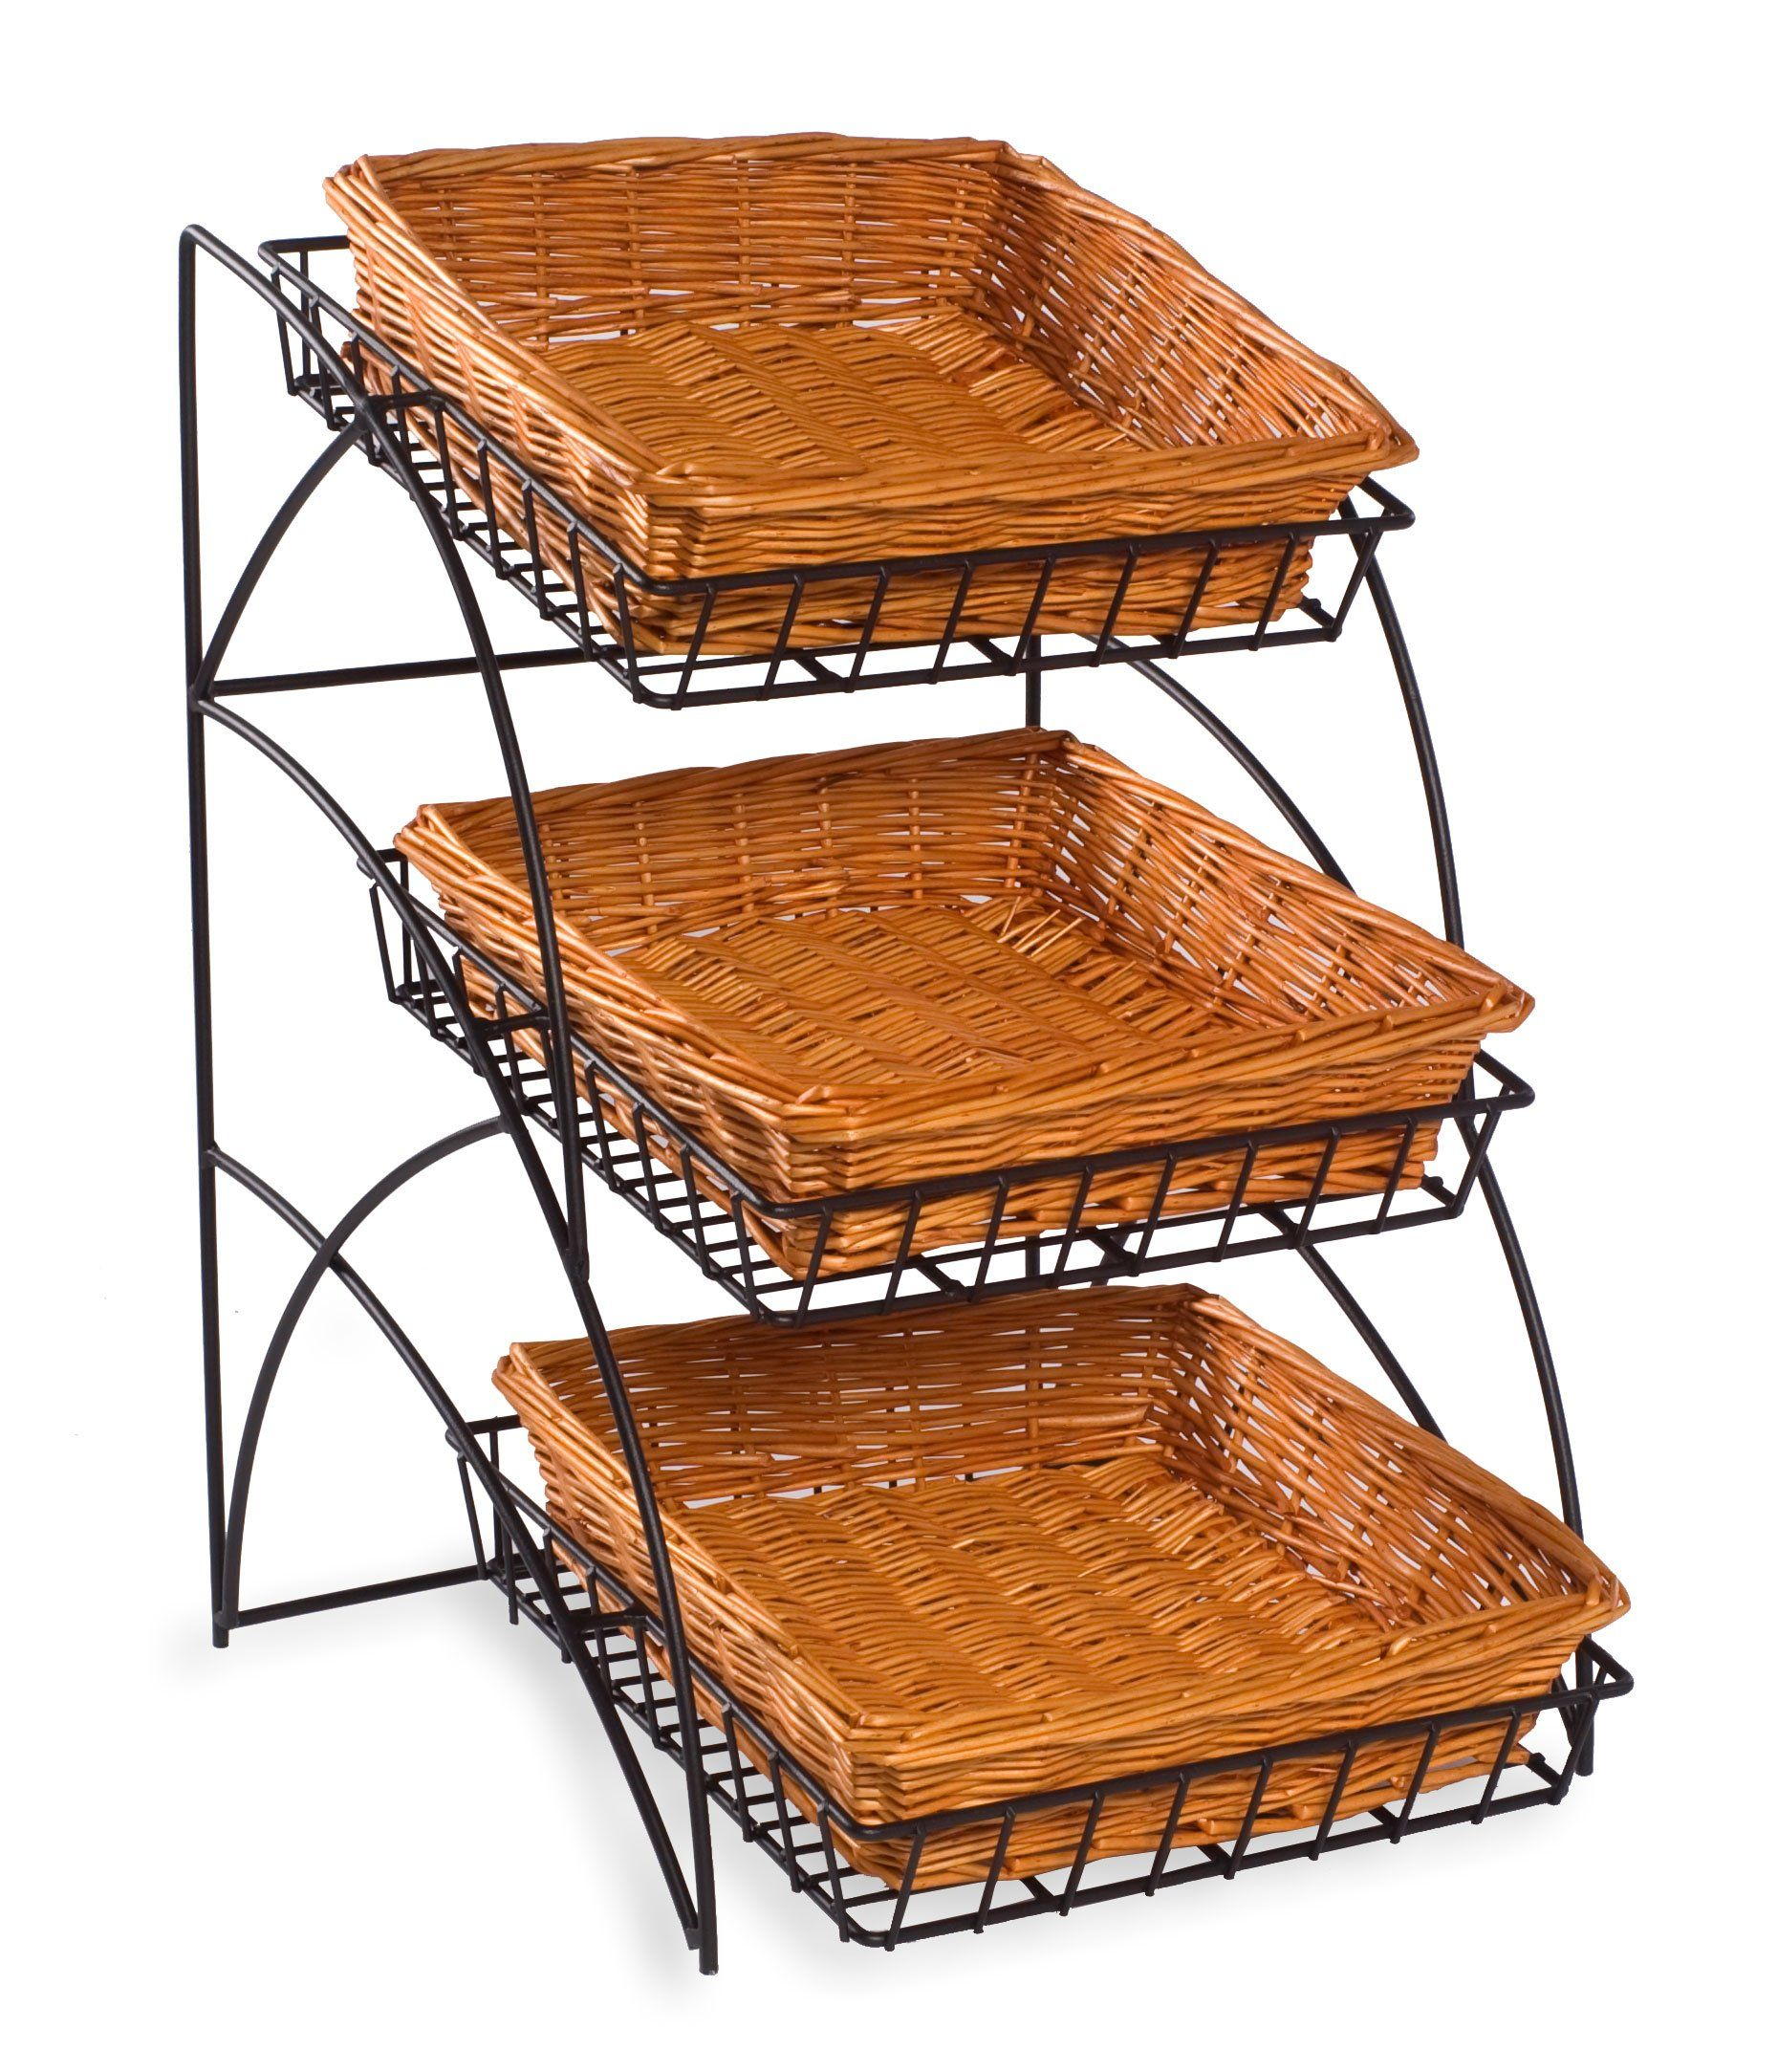 22 5 Tiered Wire Rack Countertop 3 Shelves With Wicker Baskets Black